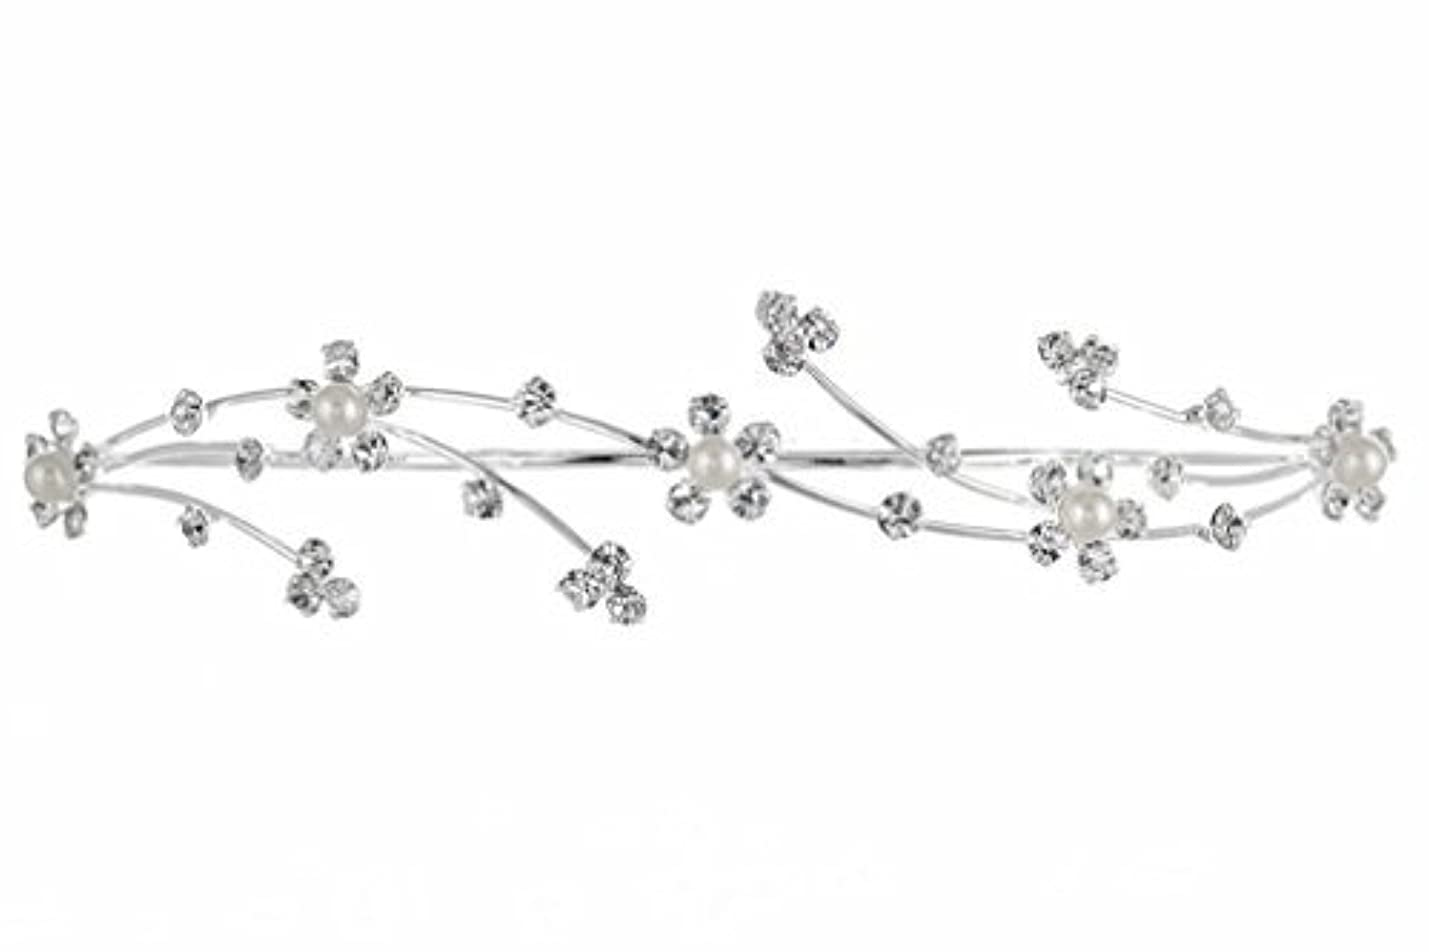 テーマ検出する不足Elegant Flower Girl Bridesmaid Tiara Hair Comb - Silver Plated Faux Pearls T160 [並行輸入品]